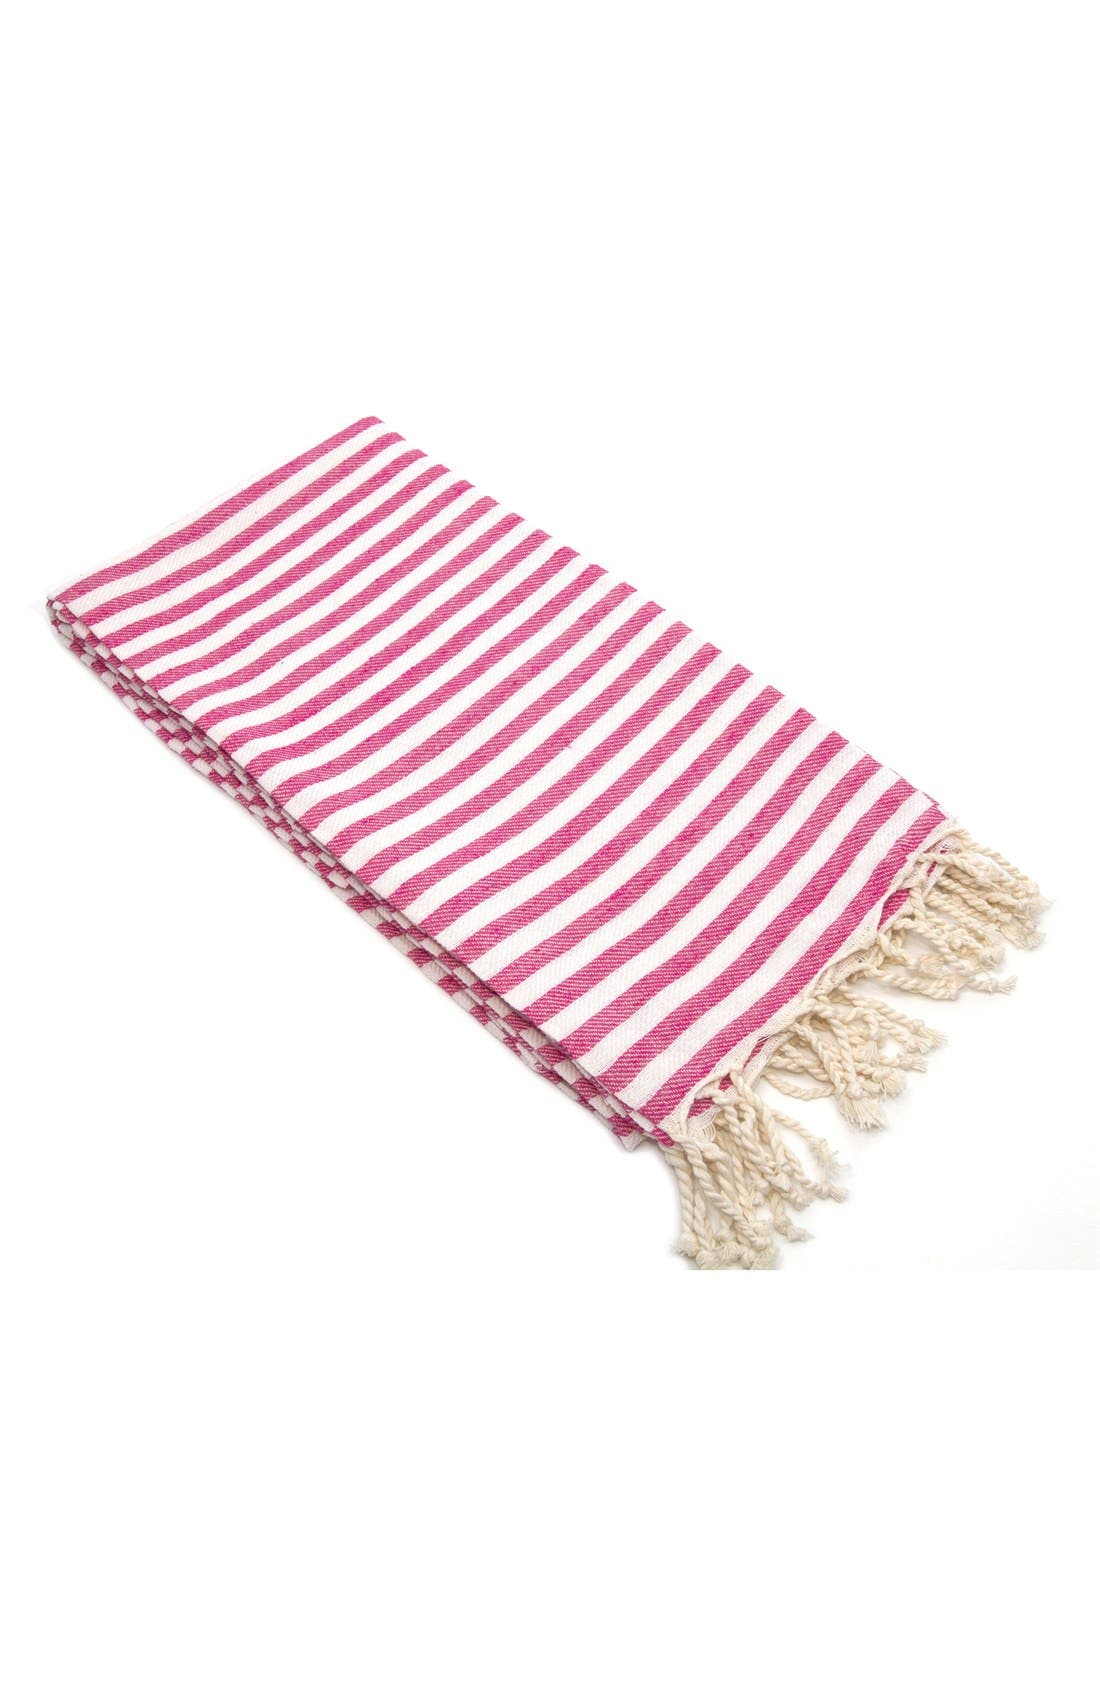 Alternate Image 1 Selected - Linum Home Textiles 'Fun in the Sun' Turkish Pestemal Towel